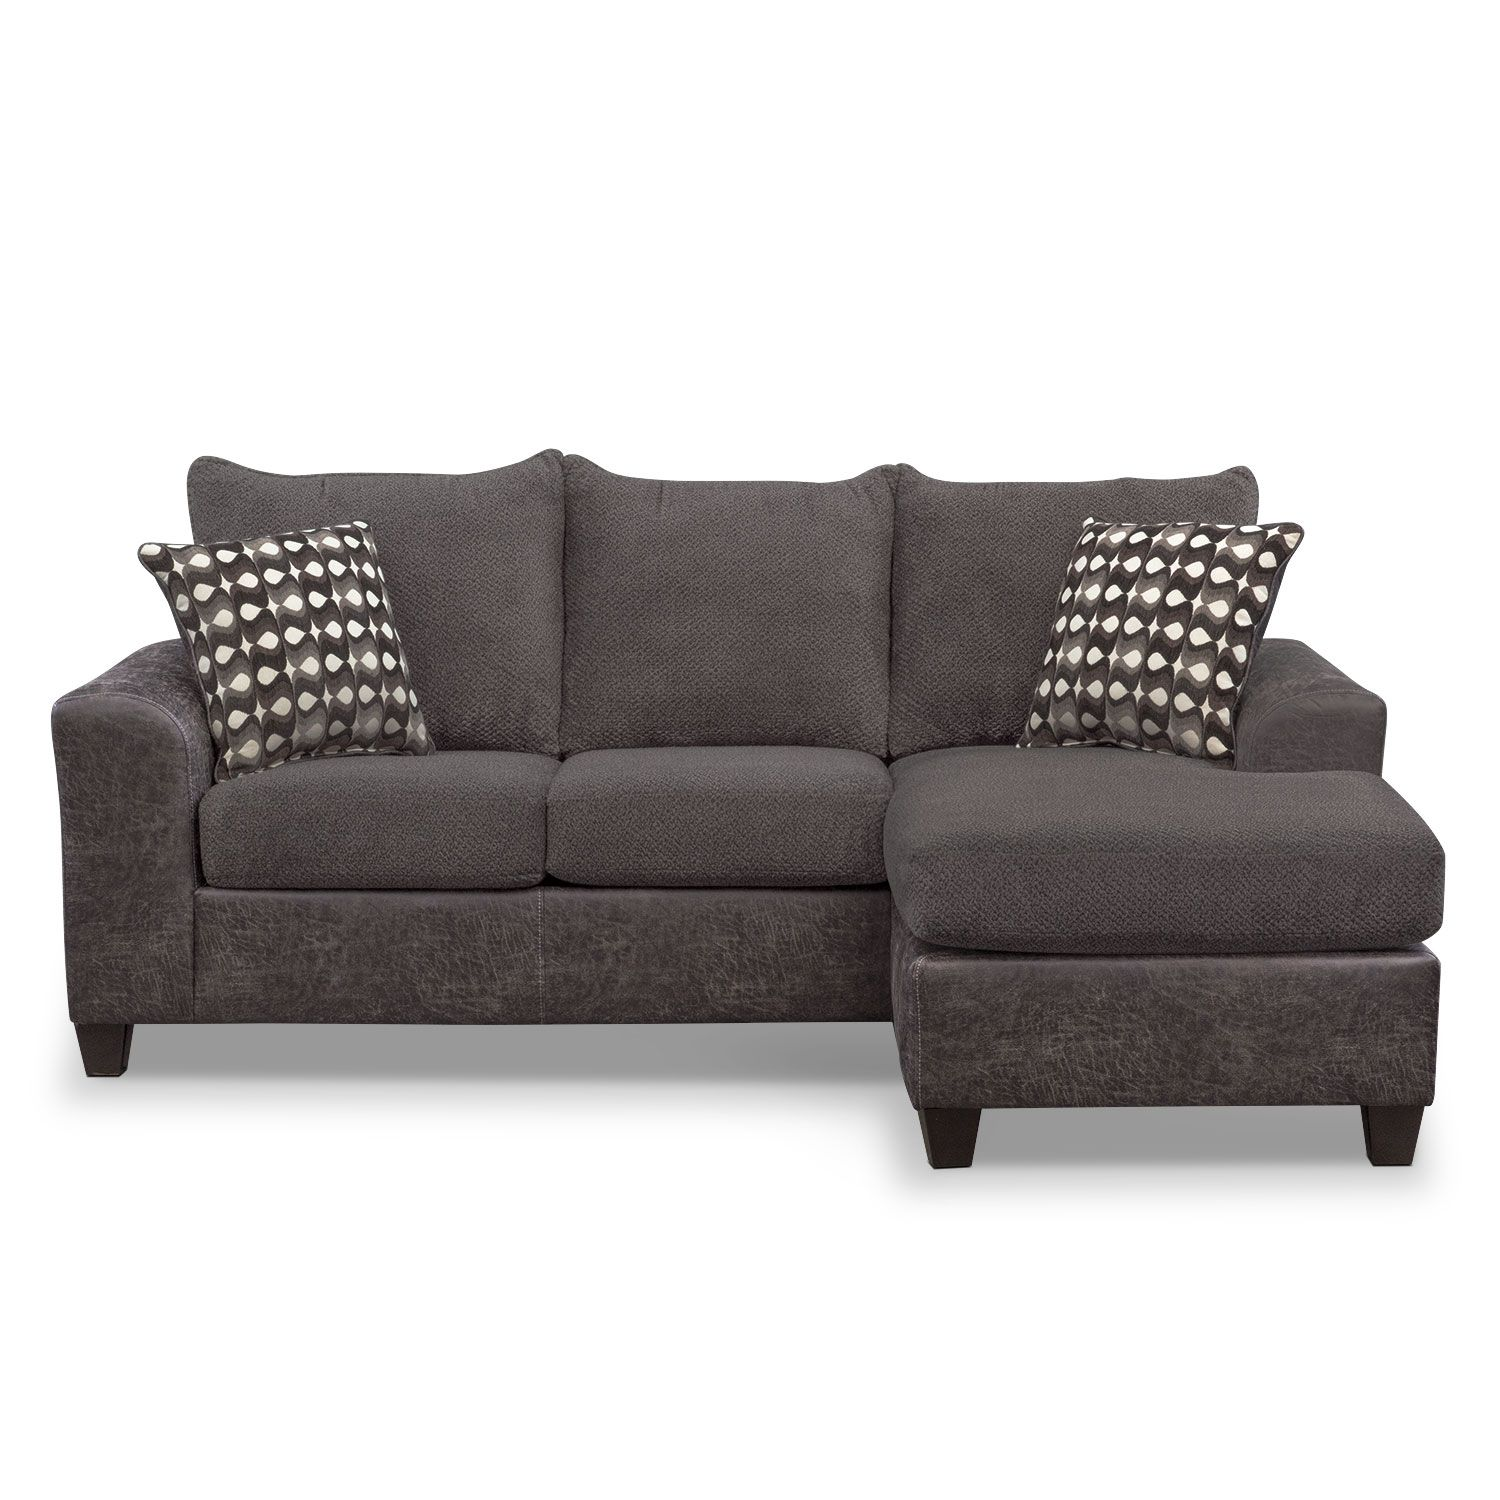 Brando Sofa With Chaise In Smoky